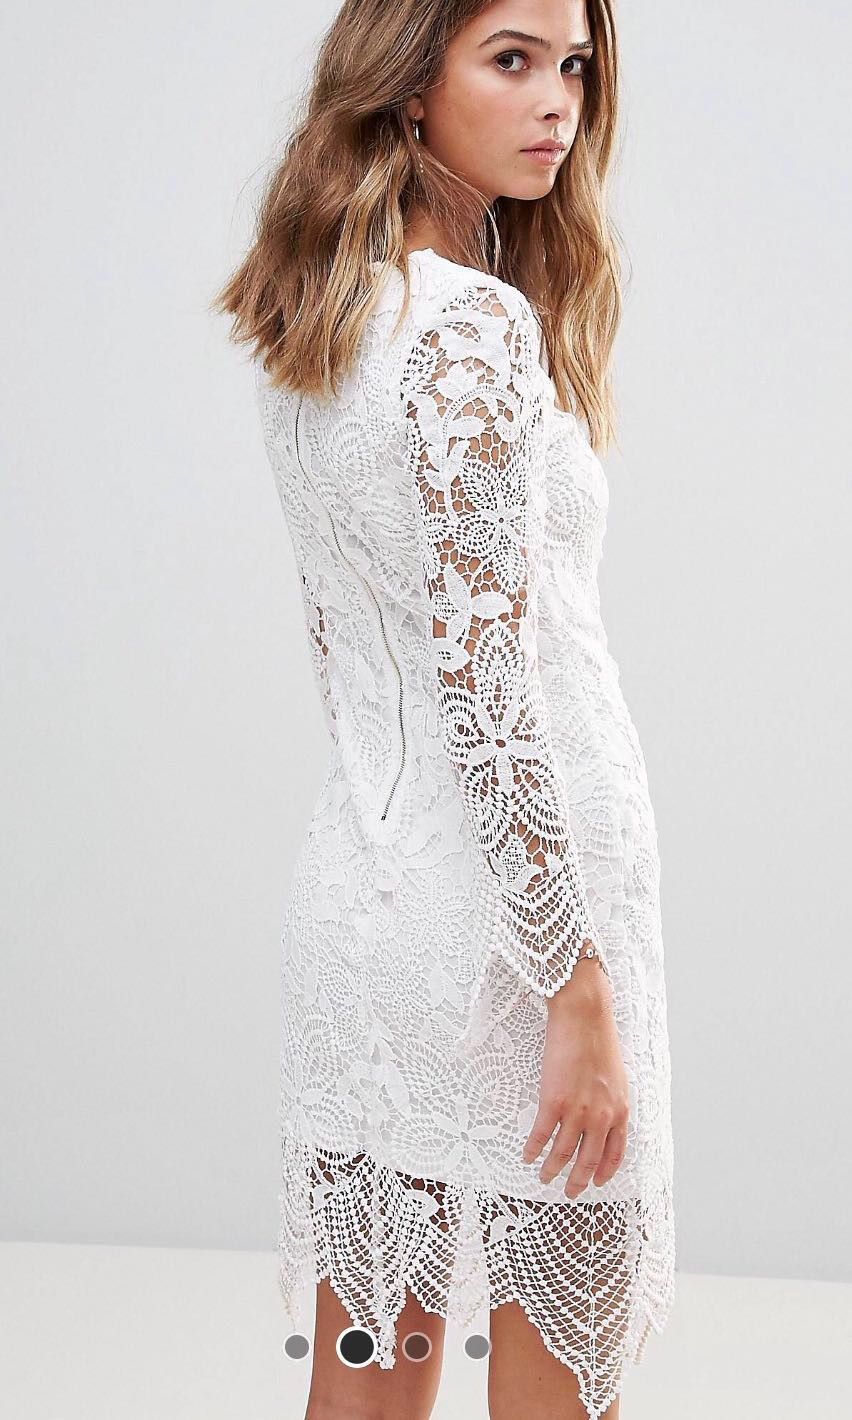 Reduced Price Asos White Lace Dress Size 12 Uk Womens